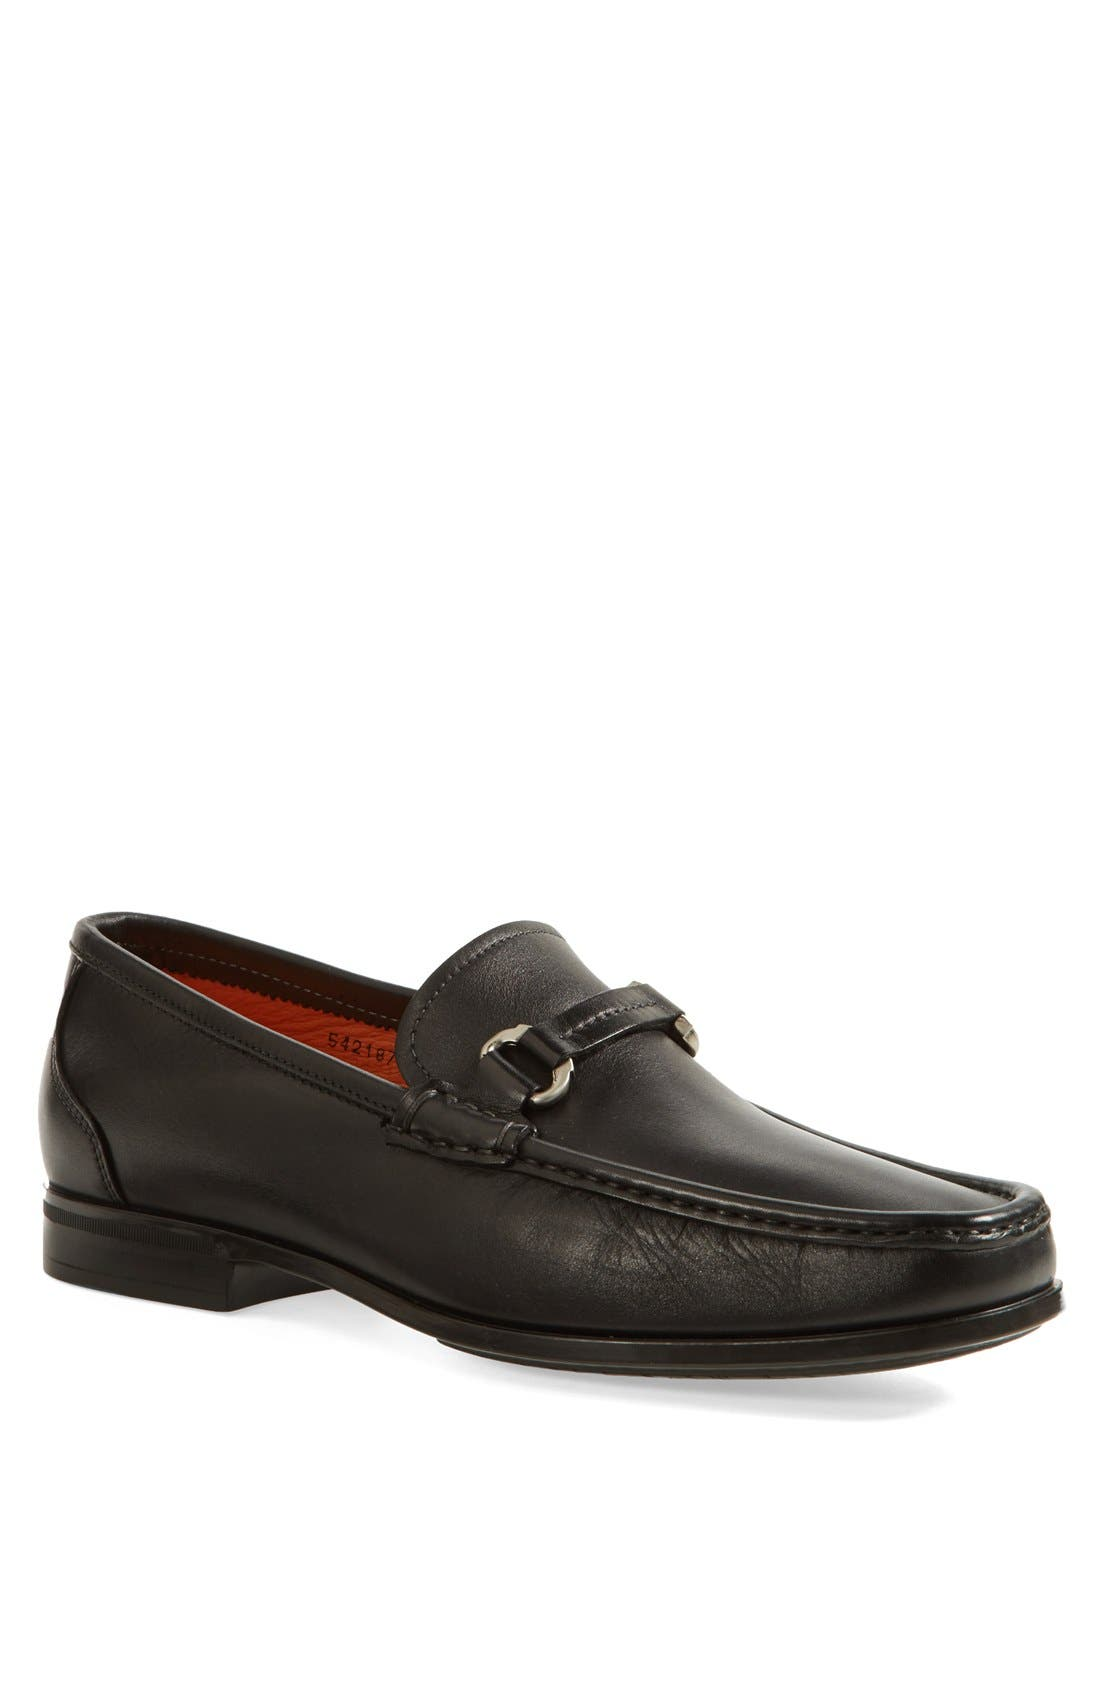 Main Image - Santoni 'Vance' Bit Loafer (Men)